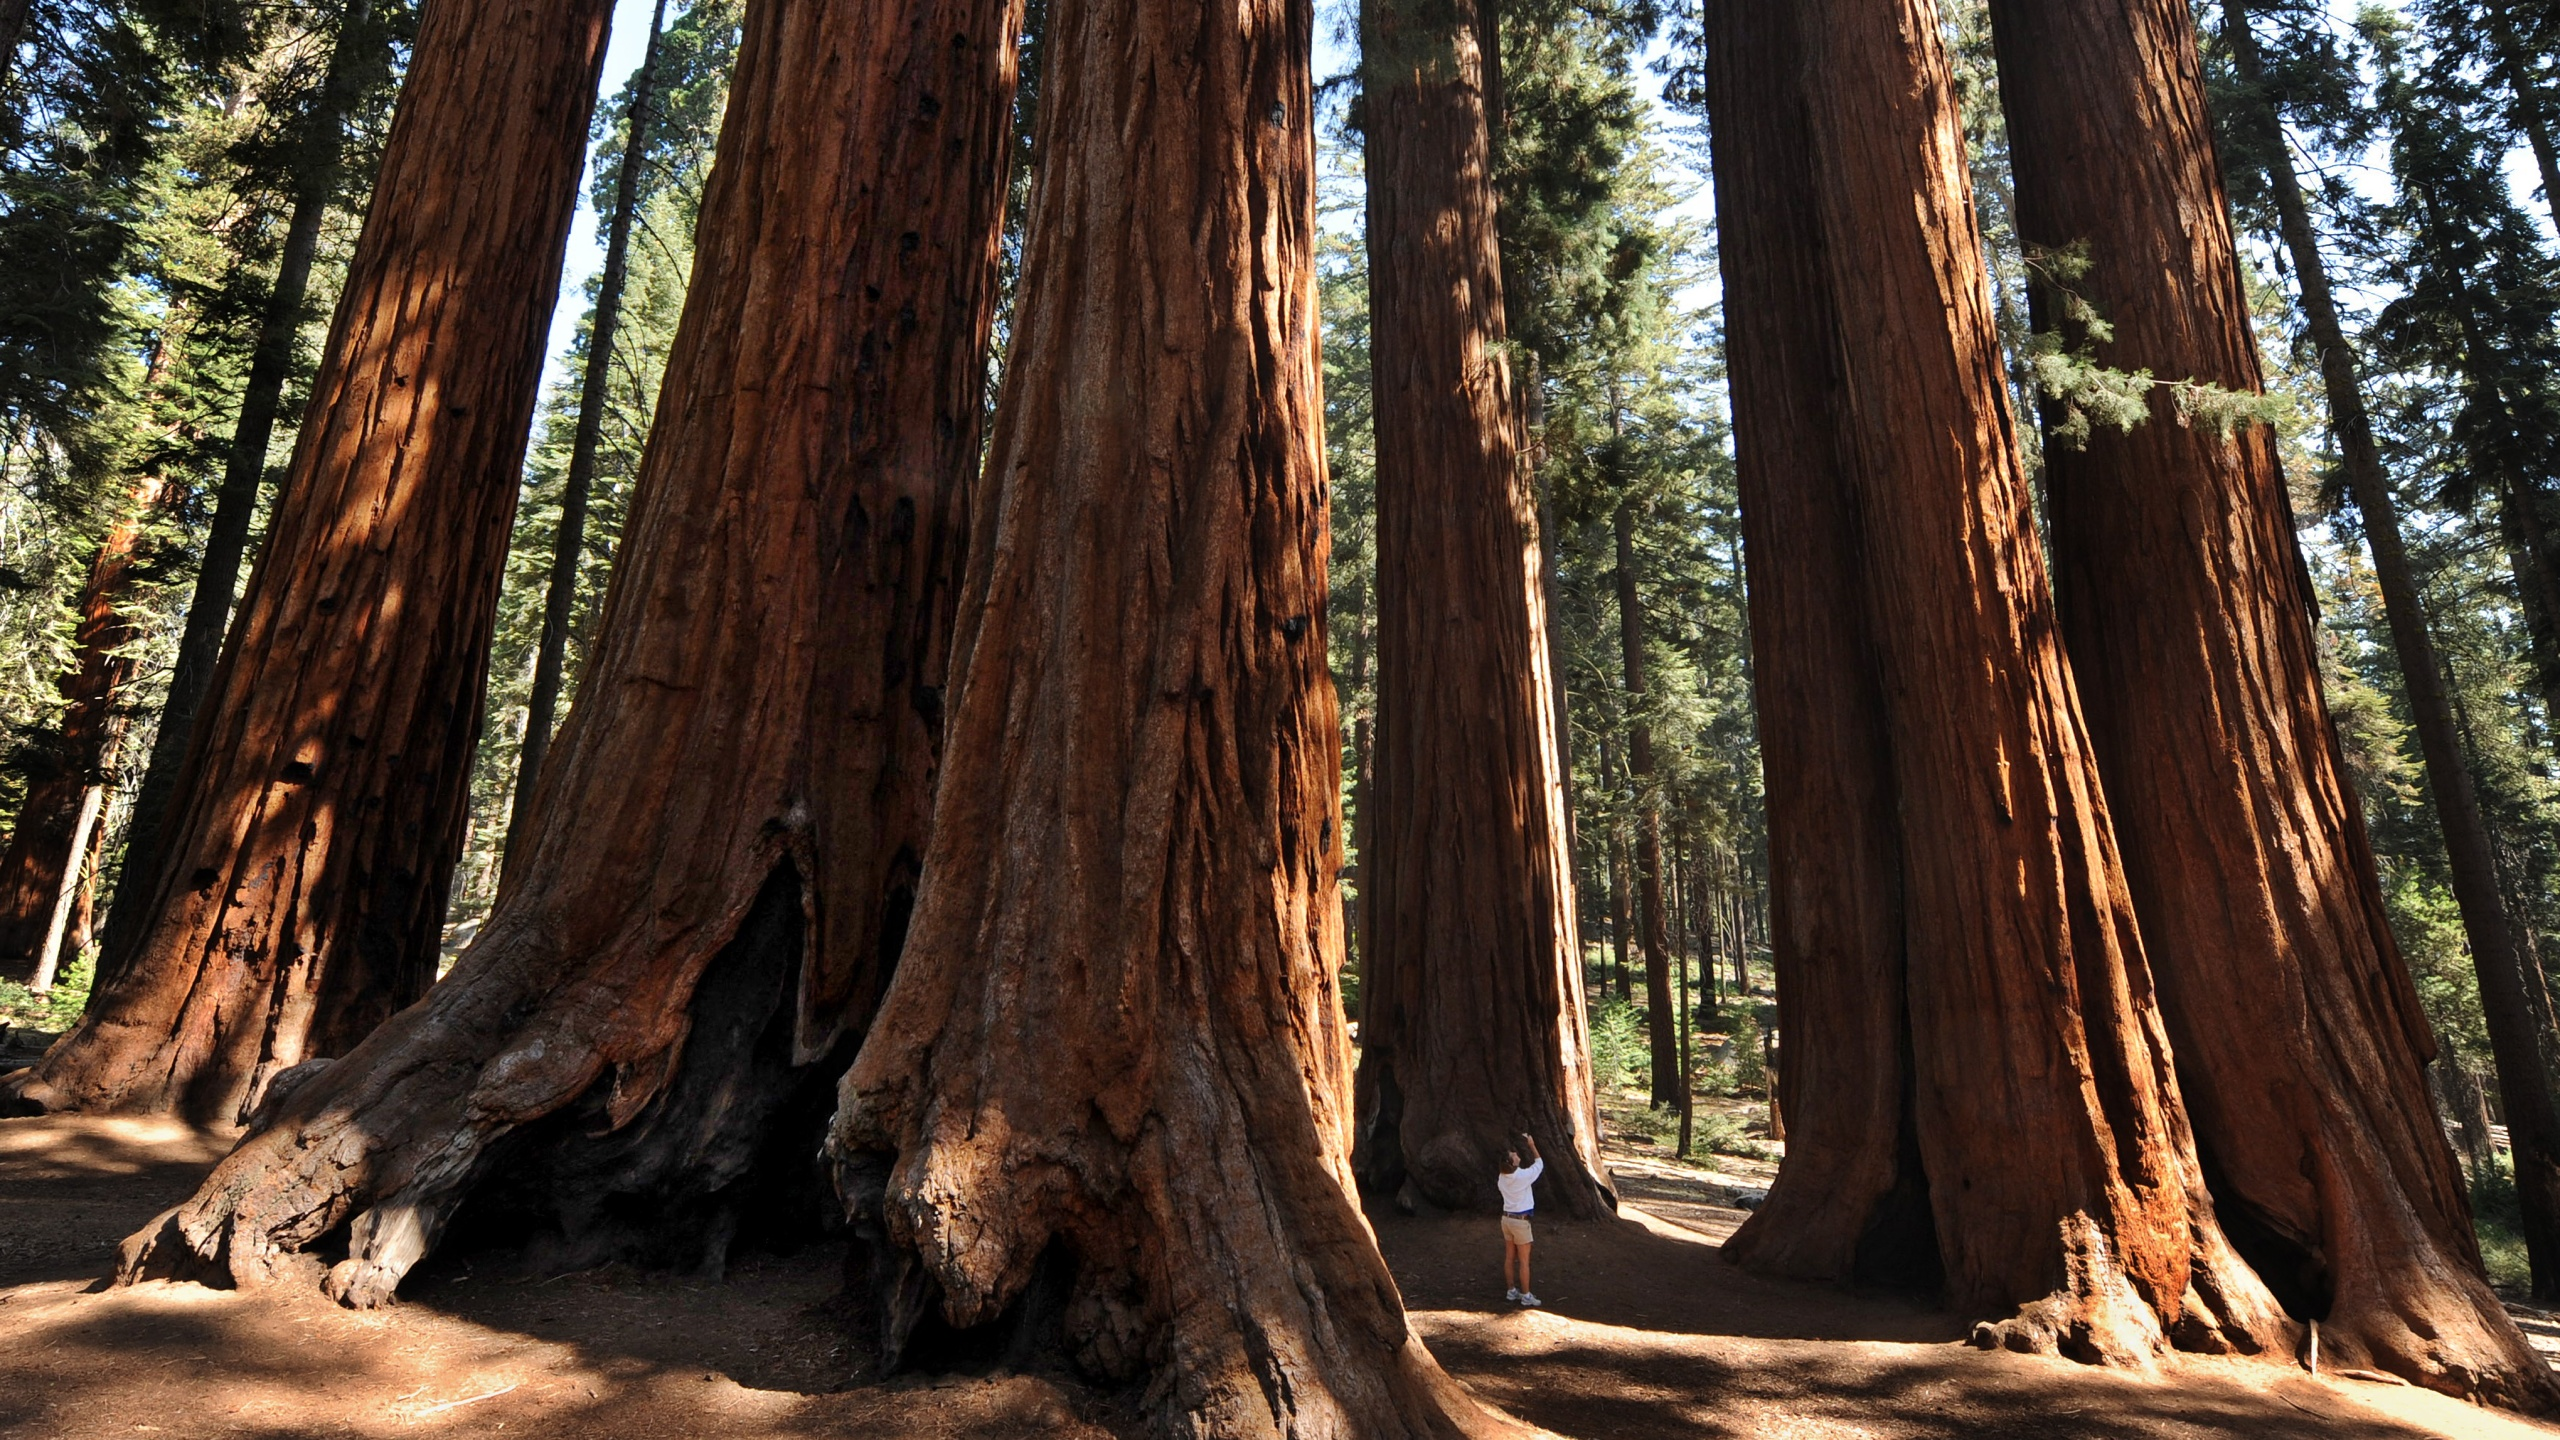 A woman stands amongst a grove of giant Sequoia trees at Sequoia National Park in Central California on October 11, 2009. (Mark Ralston/AFP via Getty Images)